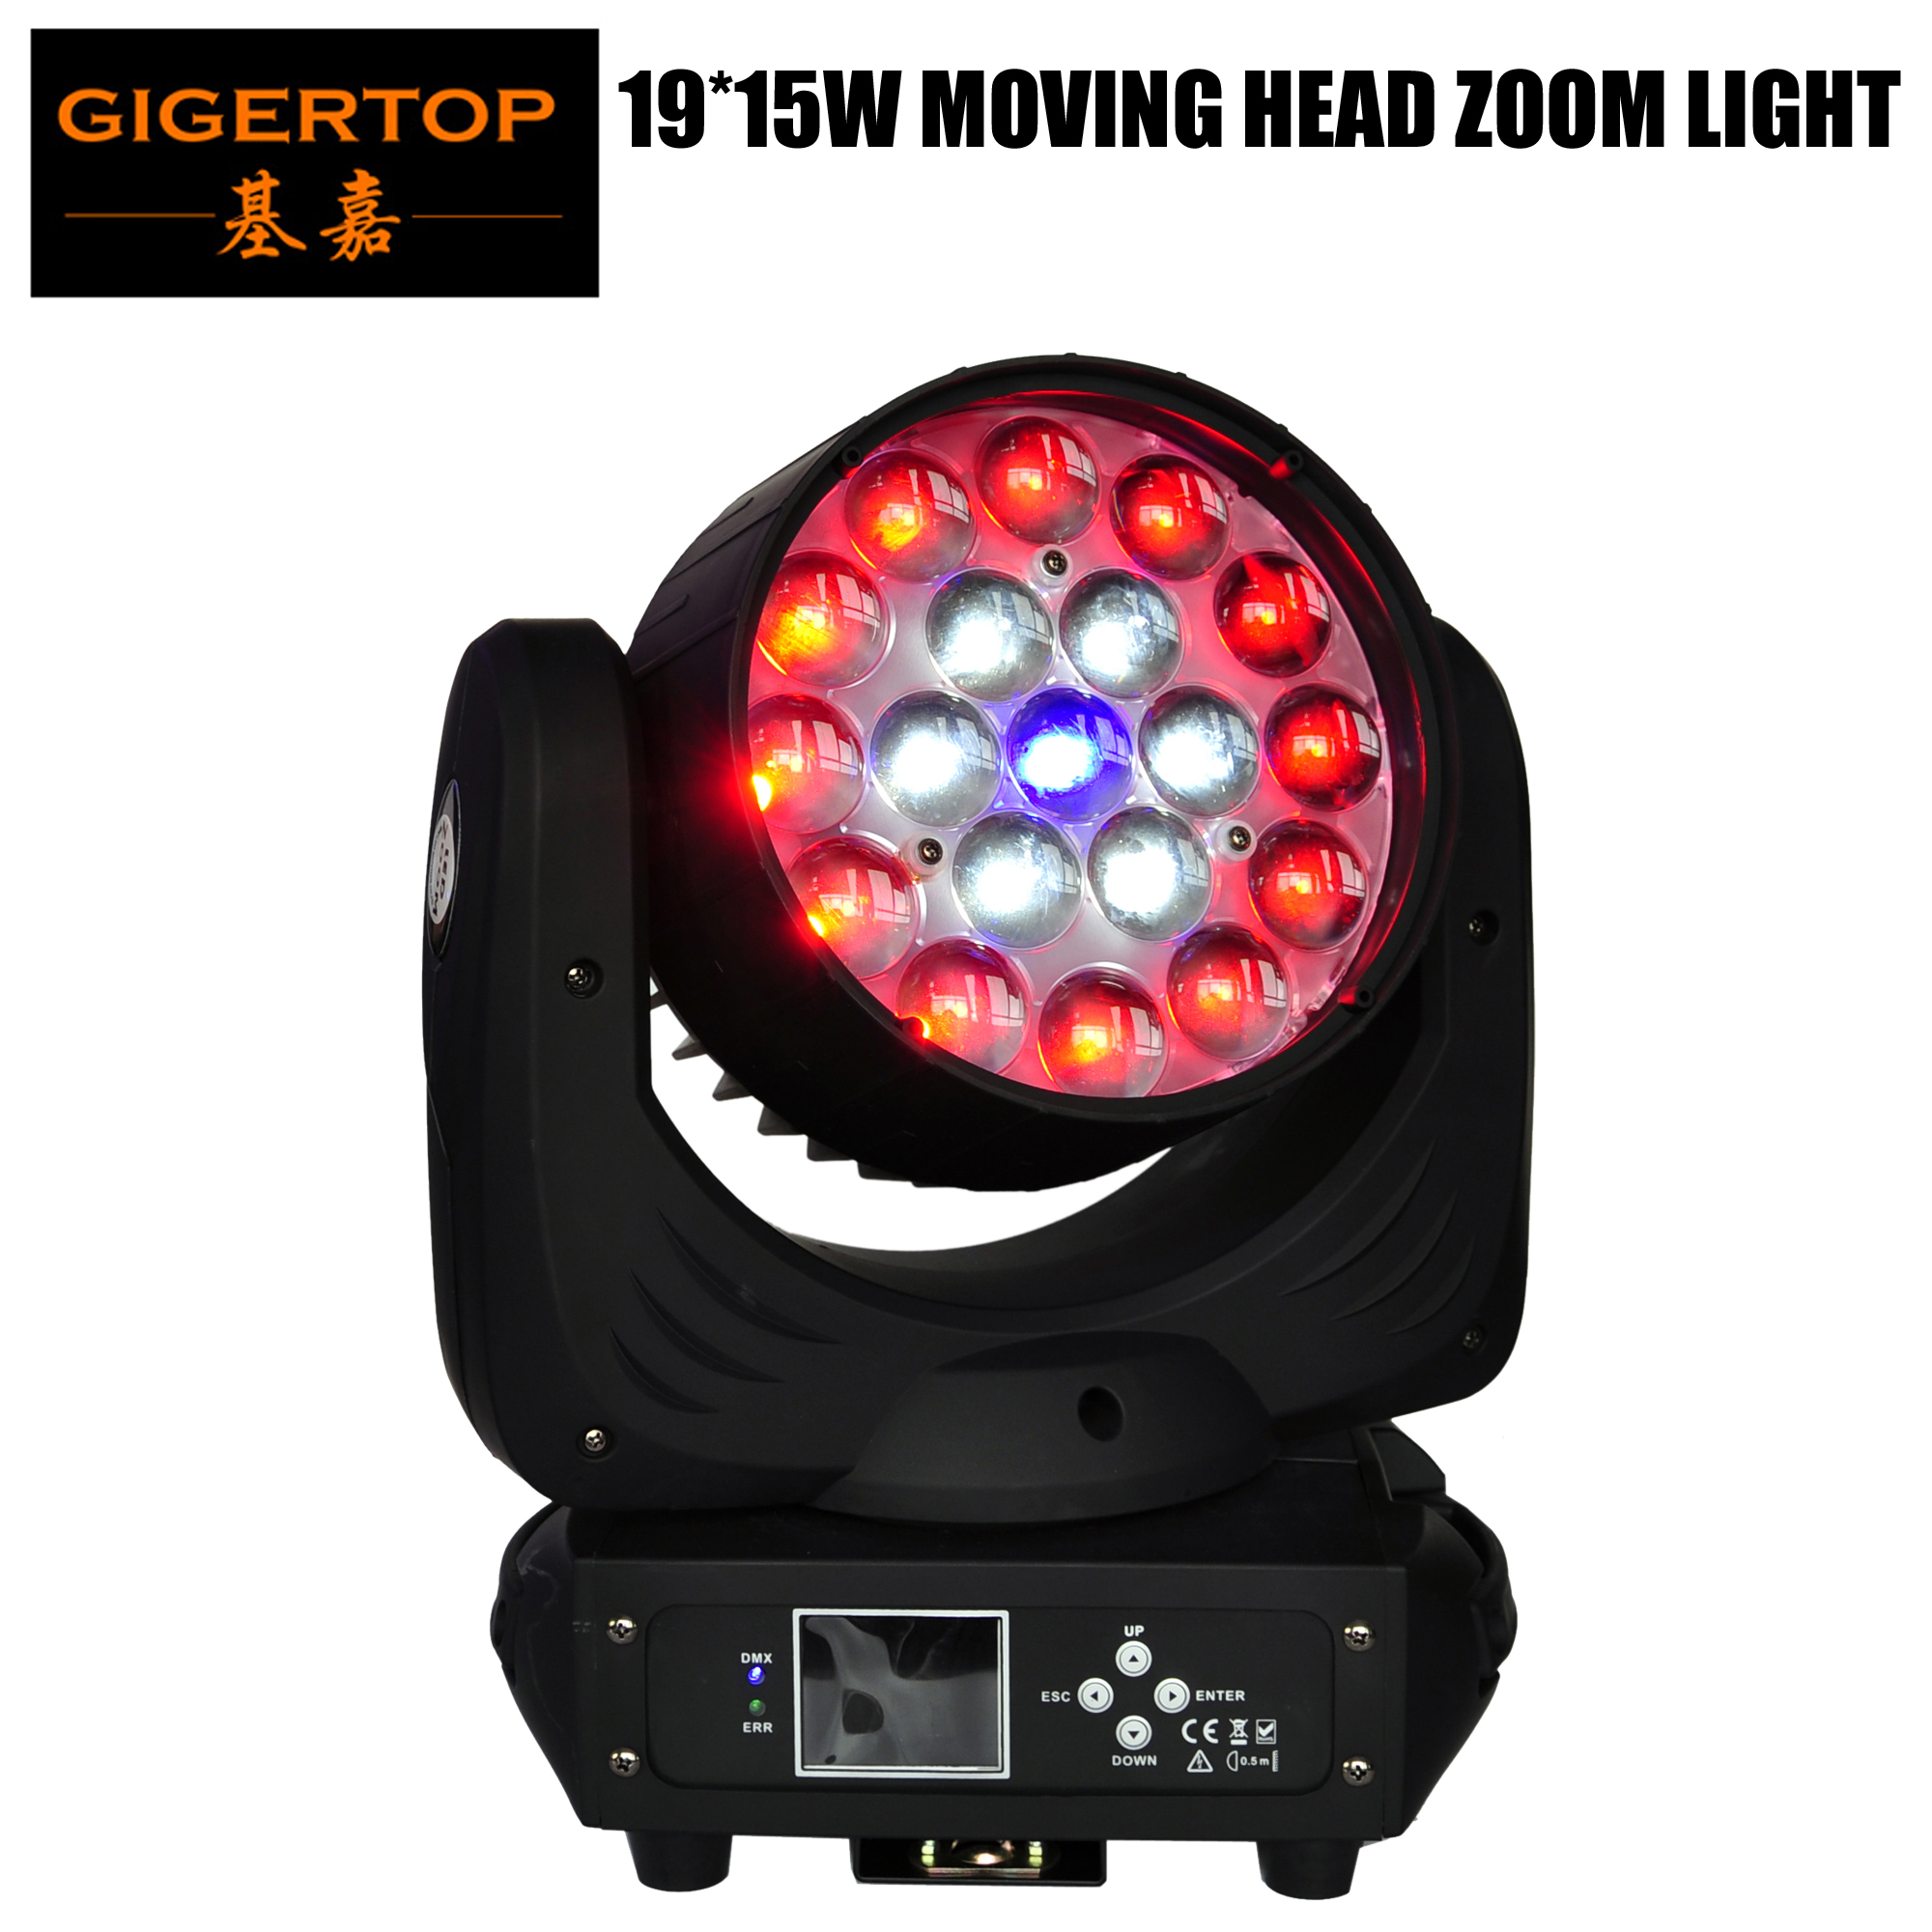 TIPTOP TP-L640A 19x15W Led Zoom Moving Head Beam Wash Light 300W High Power RGBW 4IN1 <font><b>Os</b></font>-ram Zoom <font><b>Motor</b></font> 13 / 24 Channels image